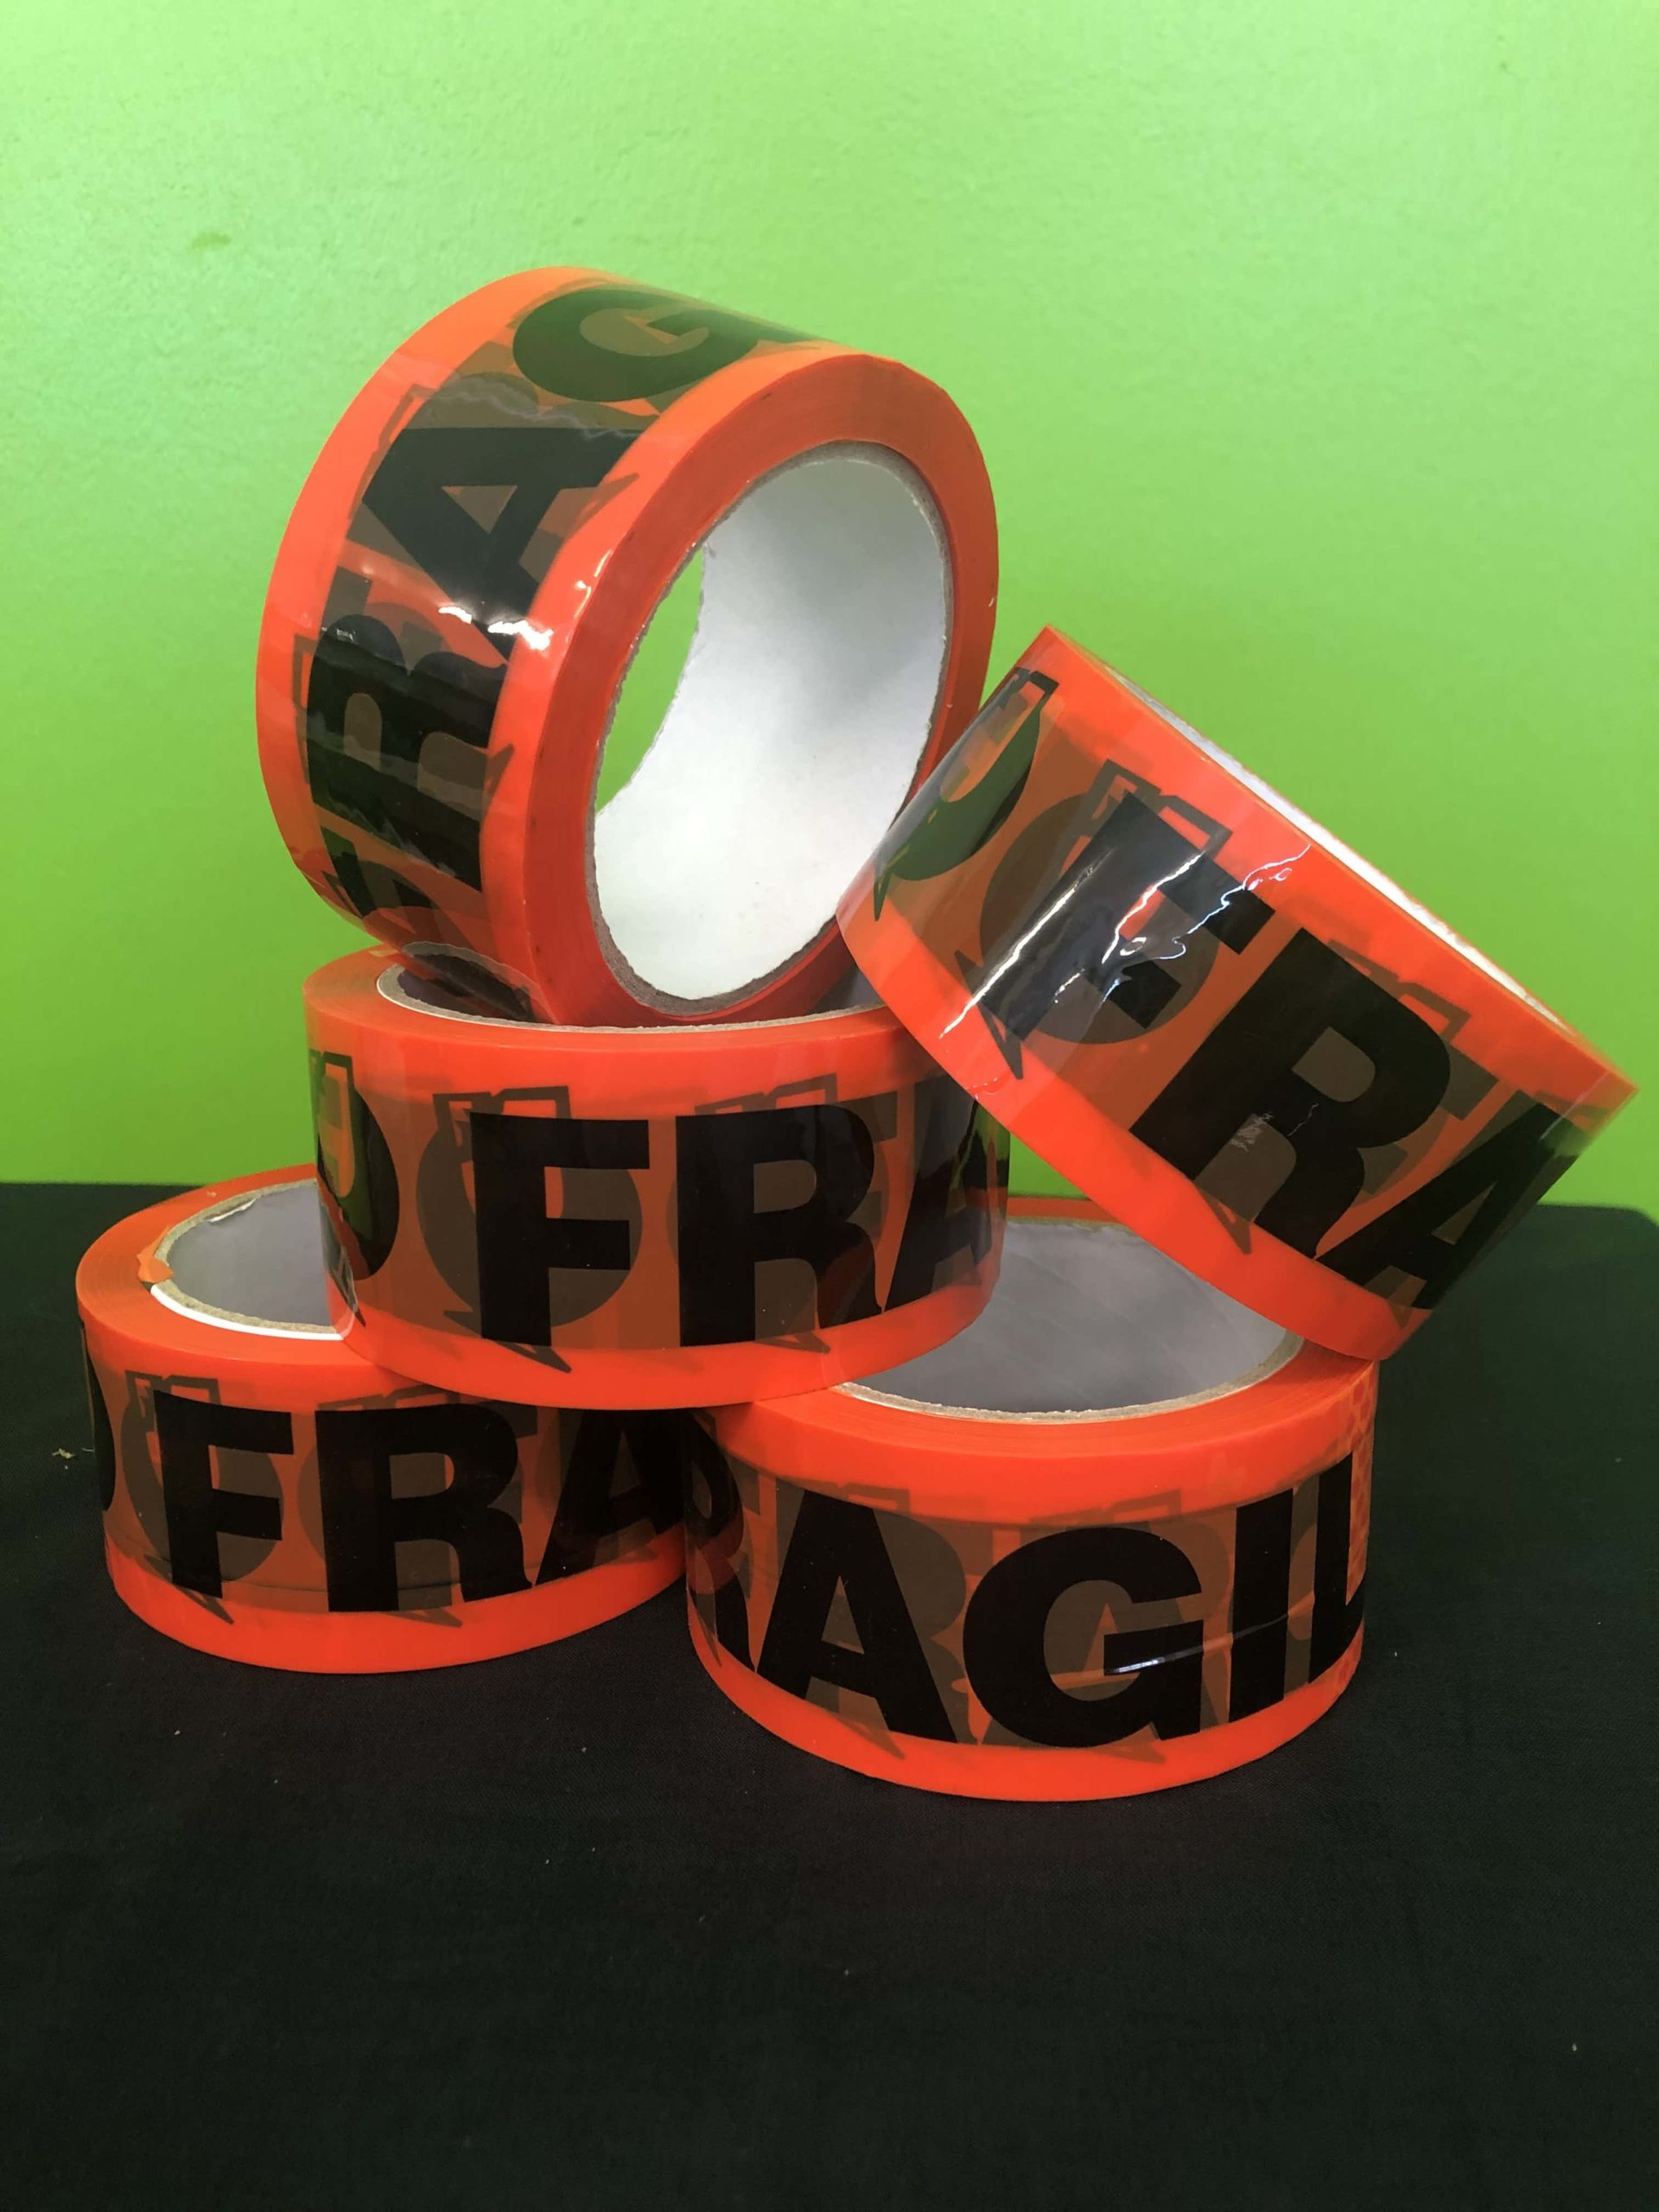 Fragile Tape for Sale in Adelaide